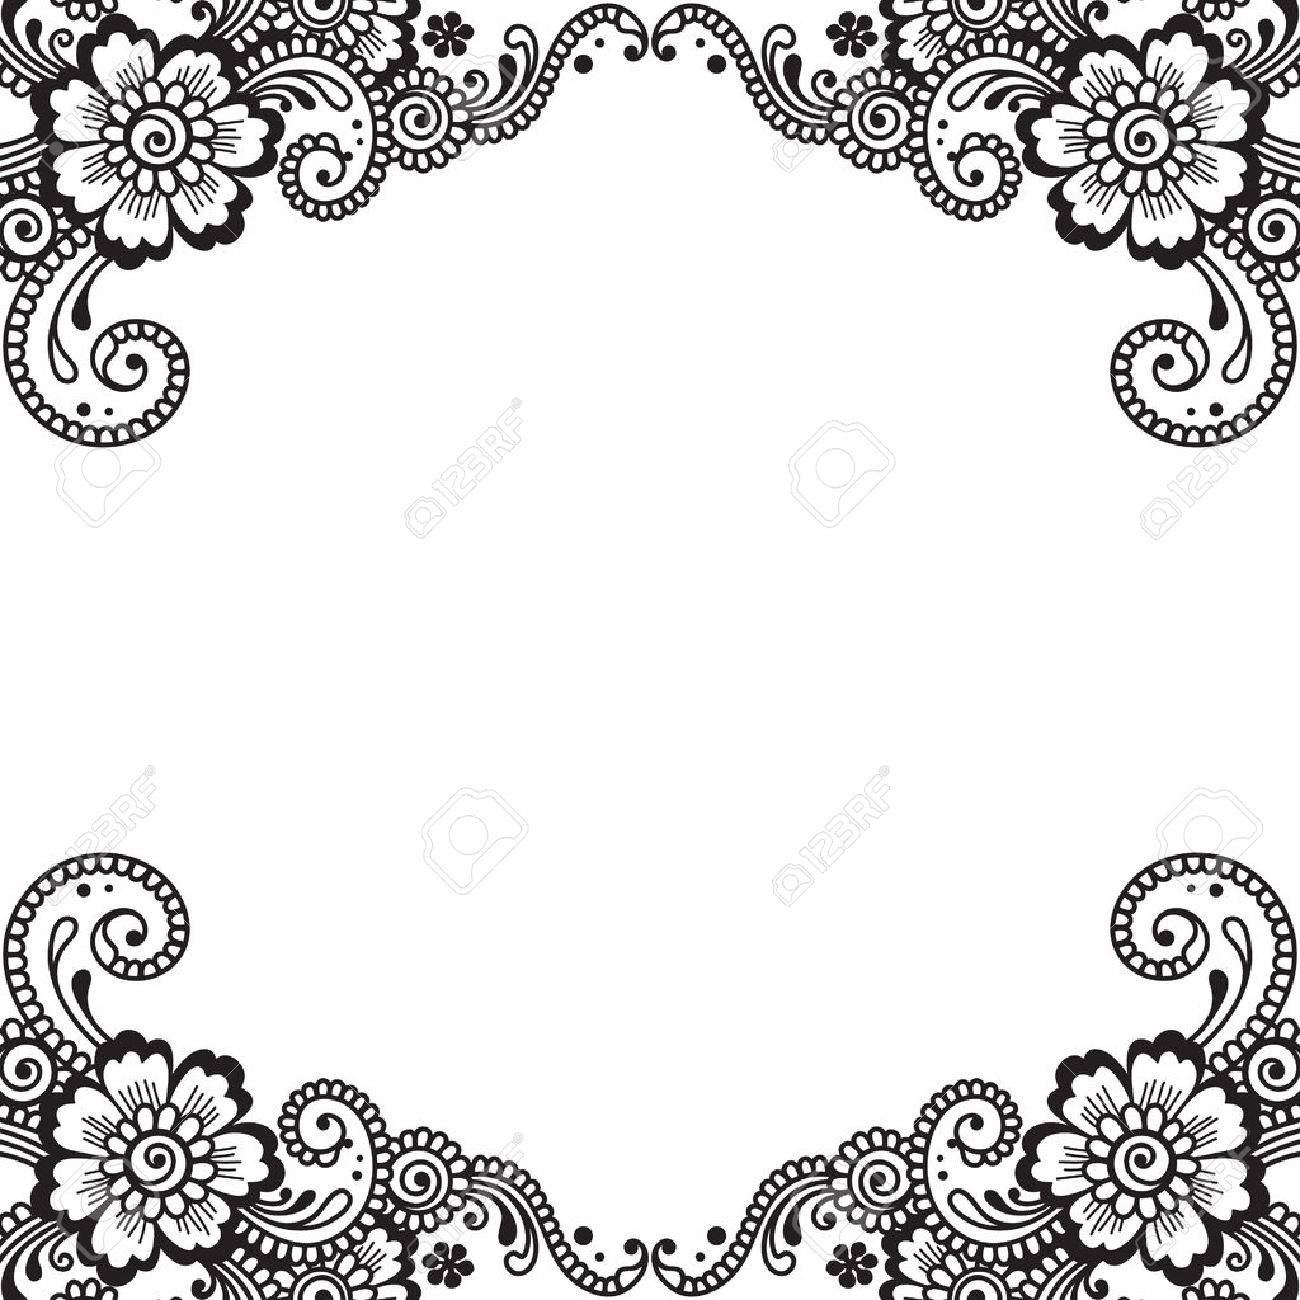 flower vector ornament corner royalty free cliparts vectors and stock illustration image 36294585 flower vector ornament corner